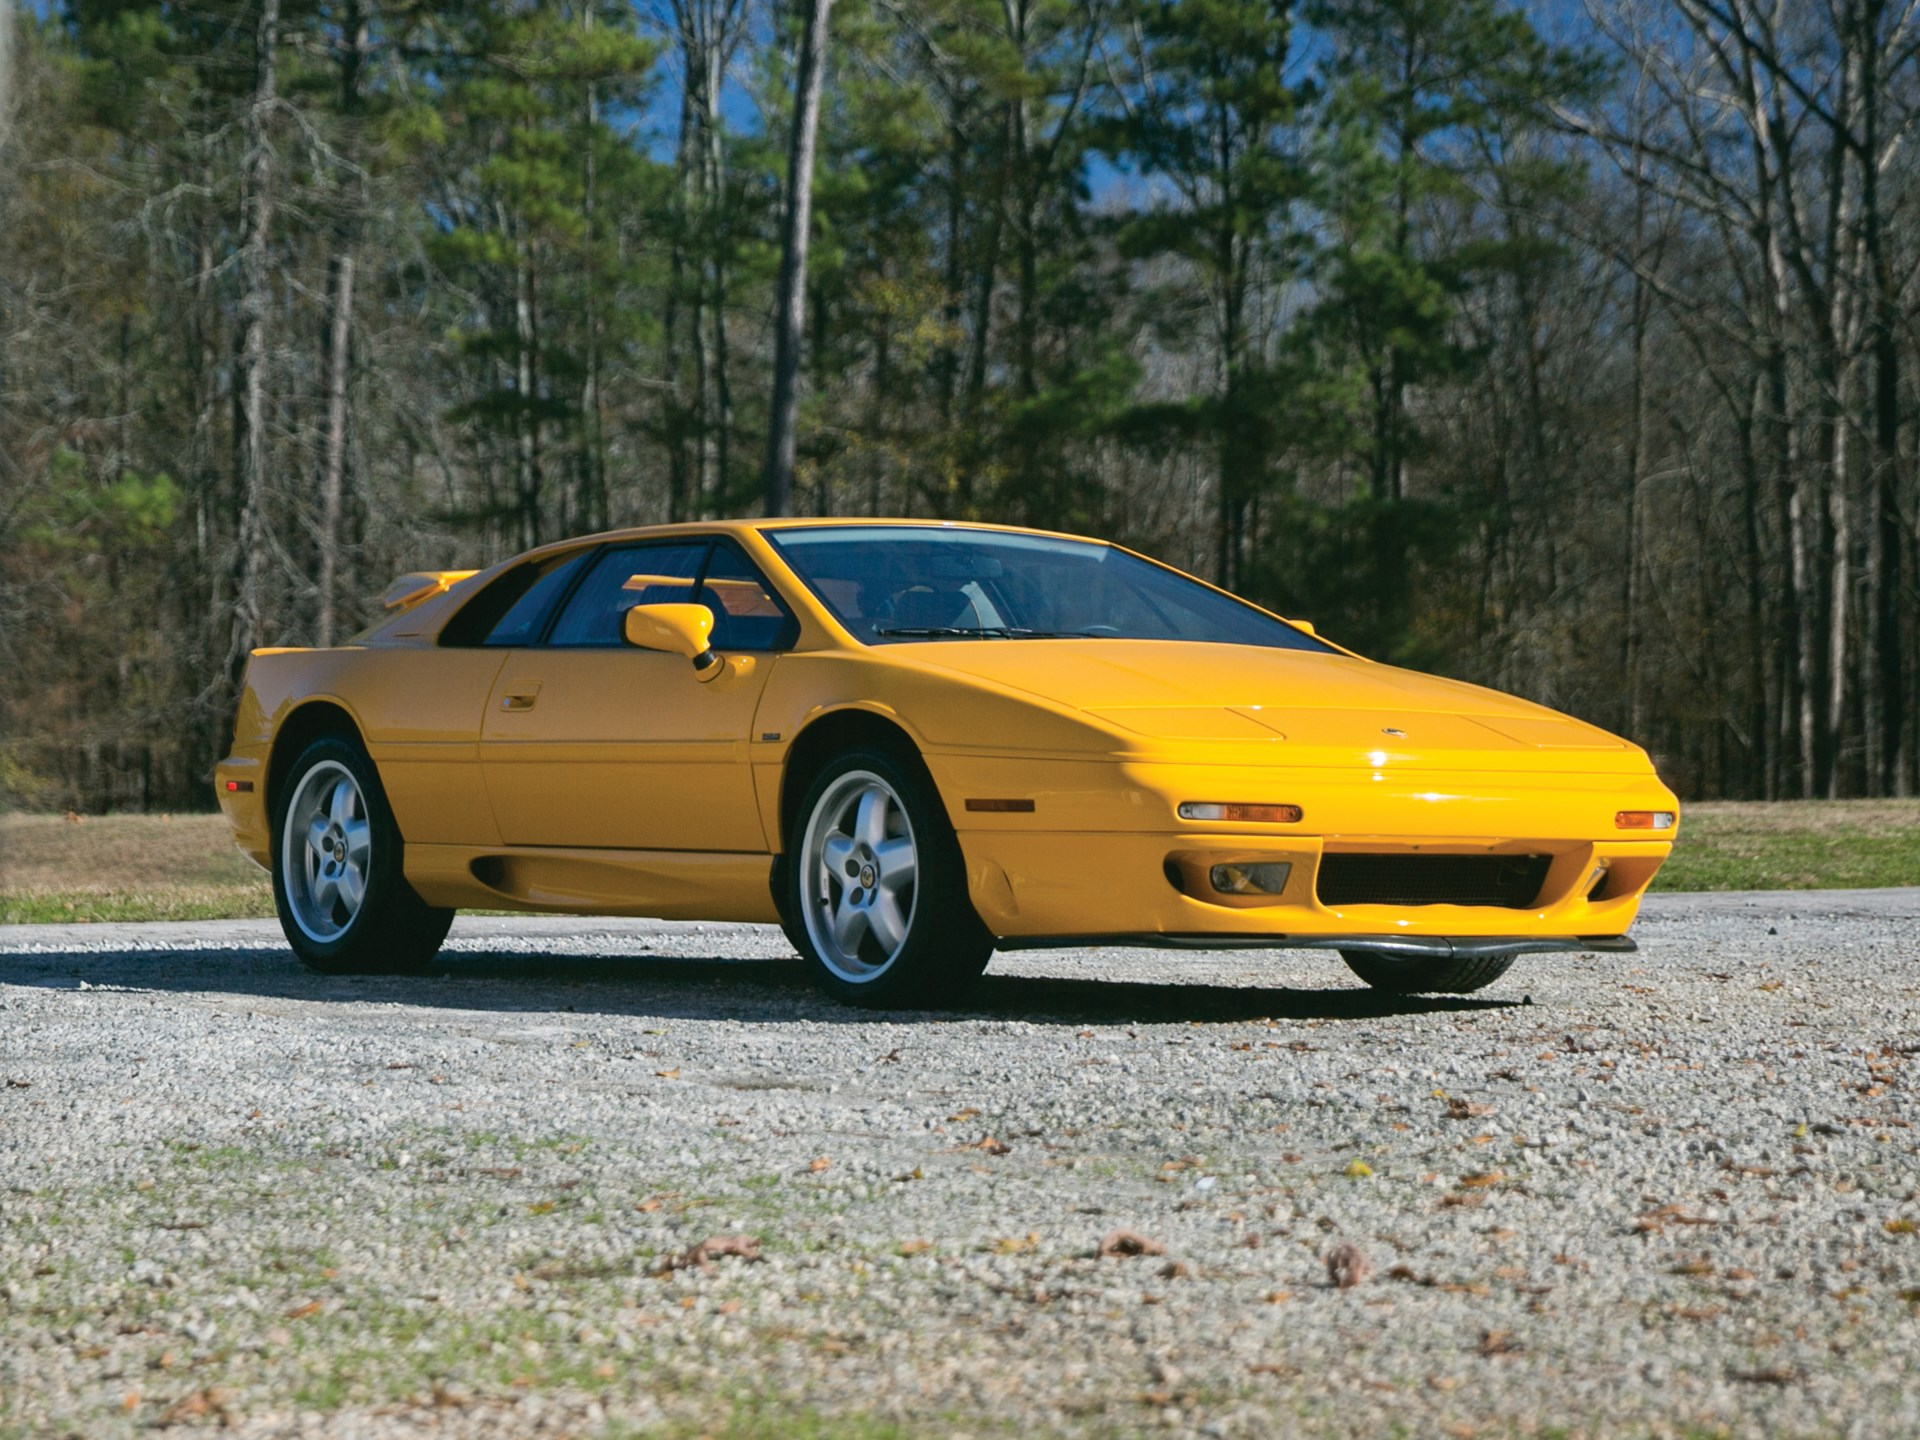 bff10cacae39 RM Sotheby s - 1995 Lotus Esprit S4